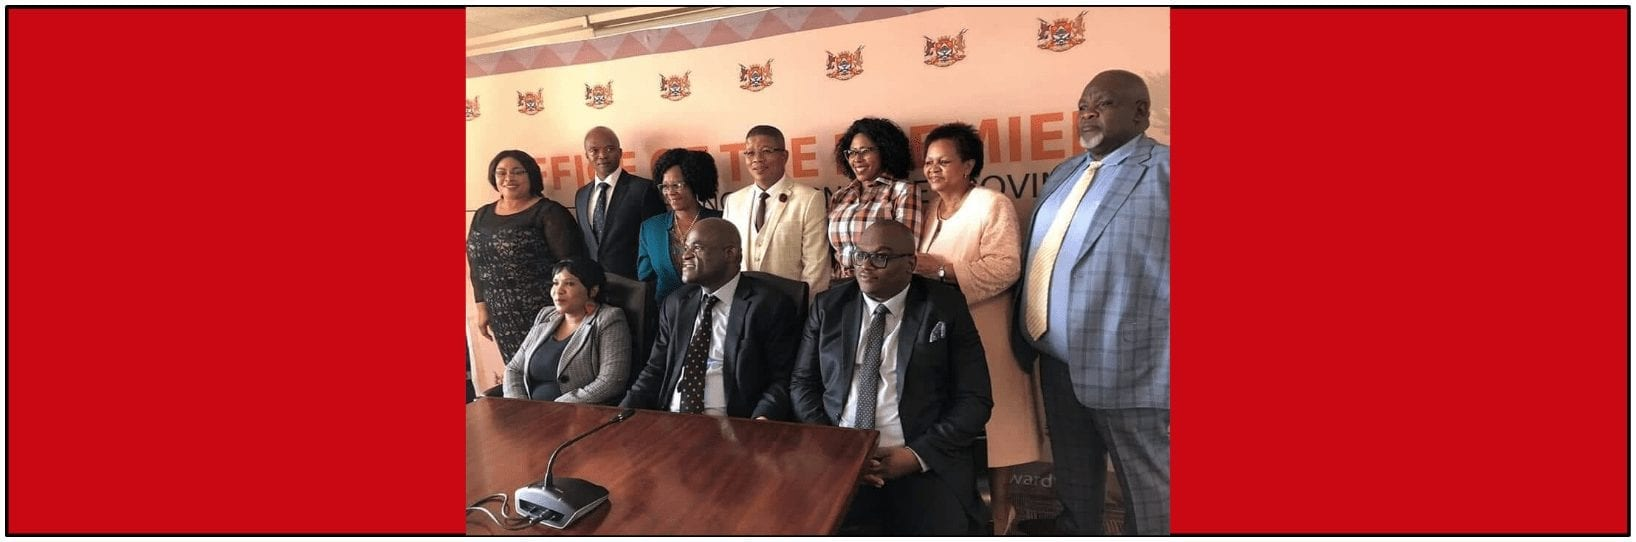 Dr Zamani Saul and his Northern Cape MEC team